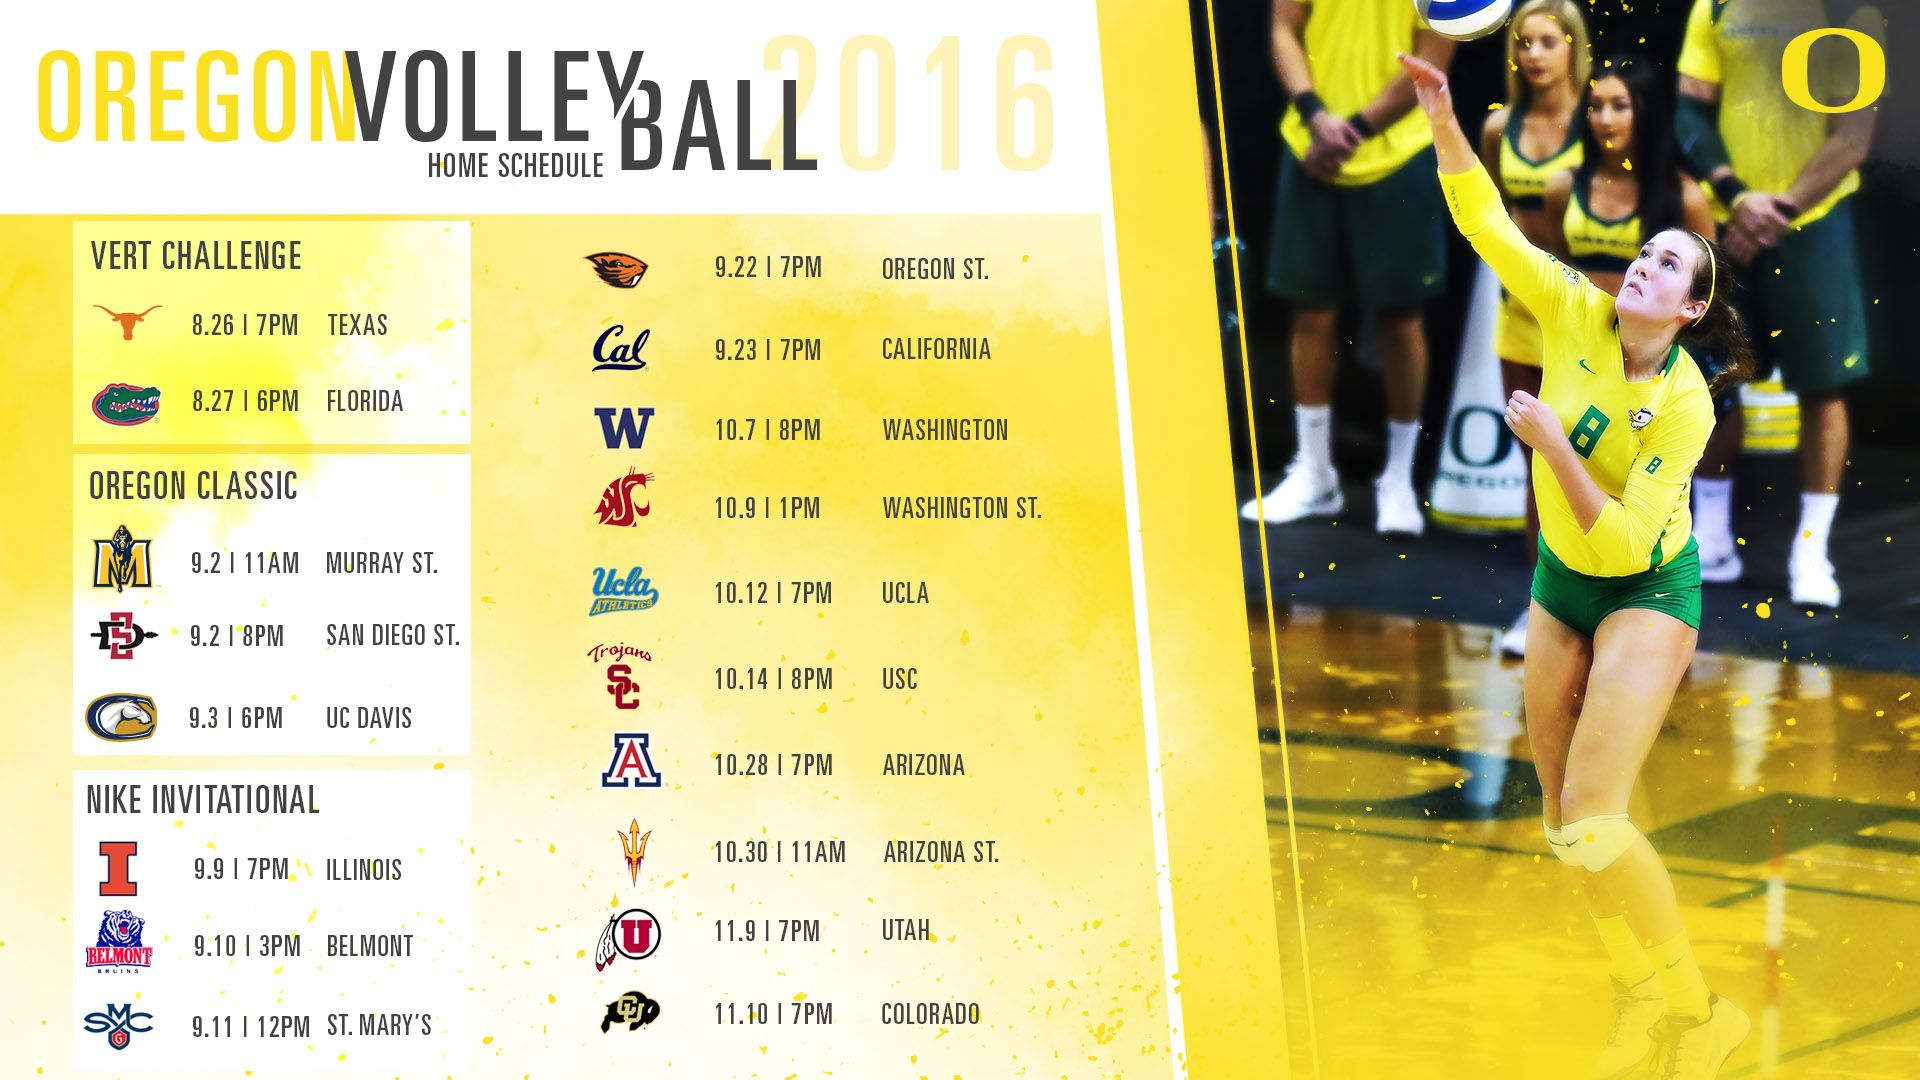 Volleyball Schedule Jpg Social Media Content Social Media Sports Design Inspiration